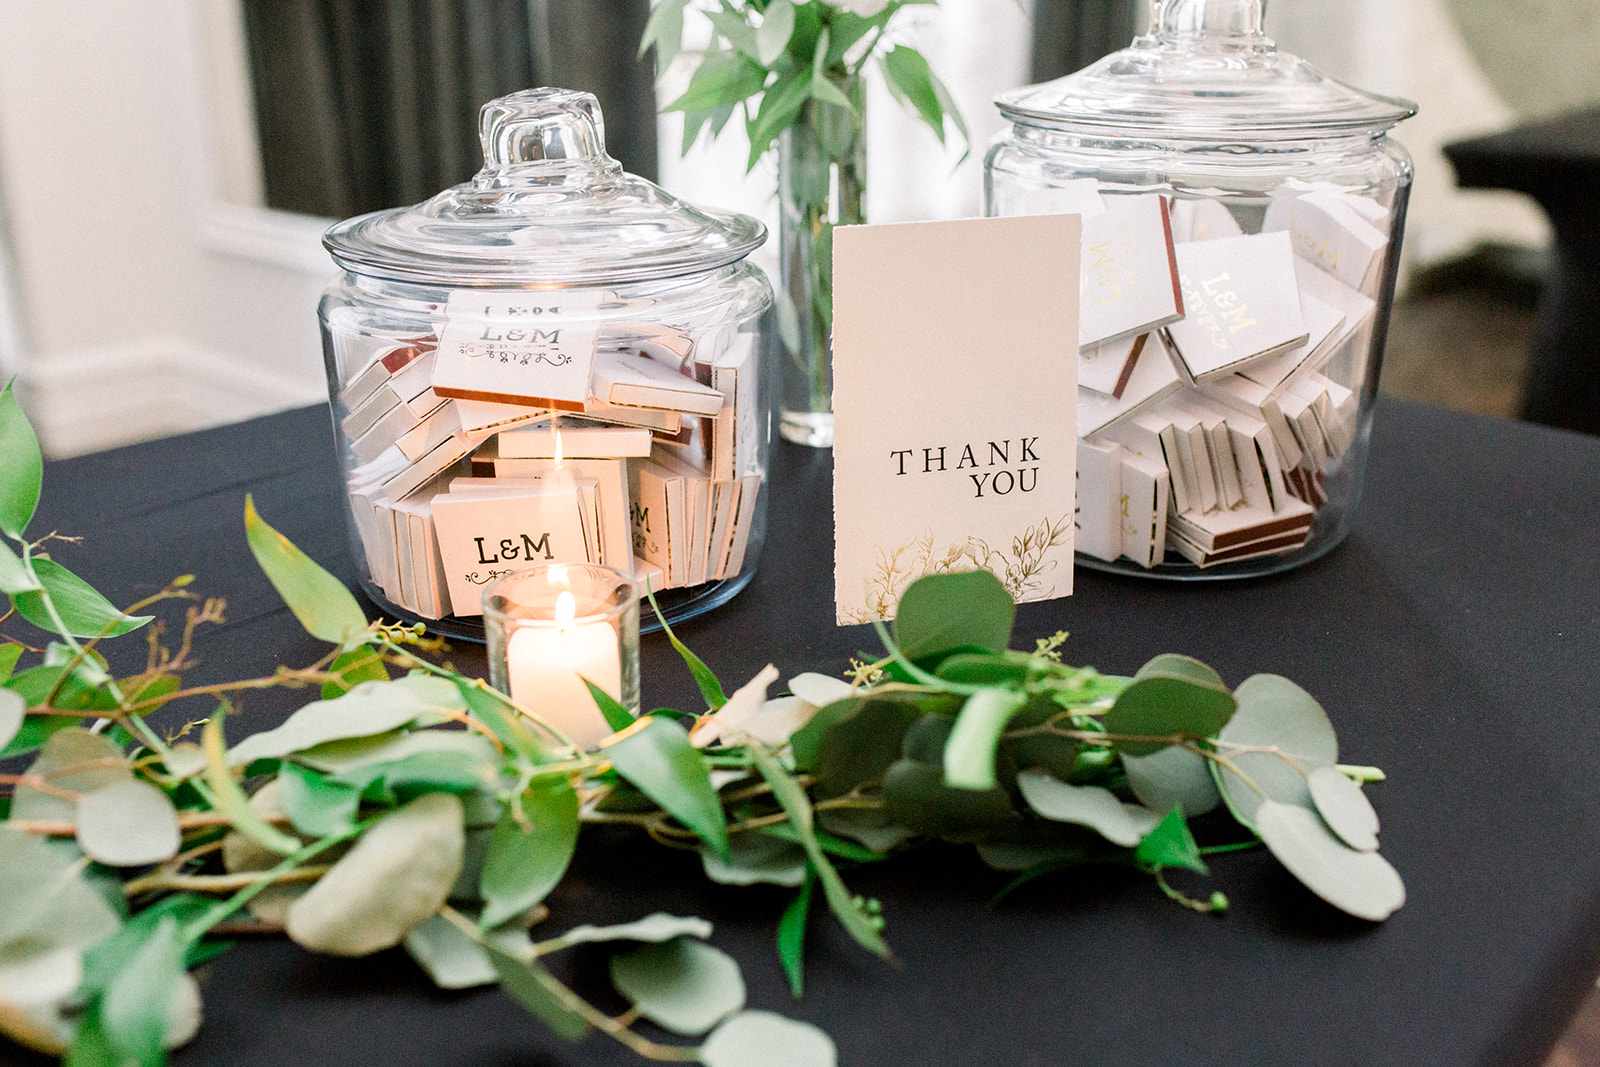 Matches used as wedding favors displayed at wedding reception for Pittsburgh wedding held at Hotel Monaco. See more beautiful details of this simple, yet stunning wedding at exhale-events.com!